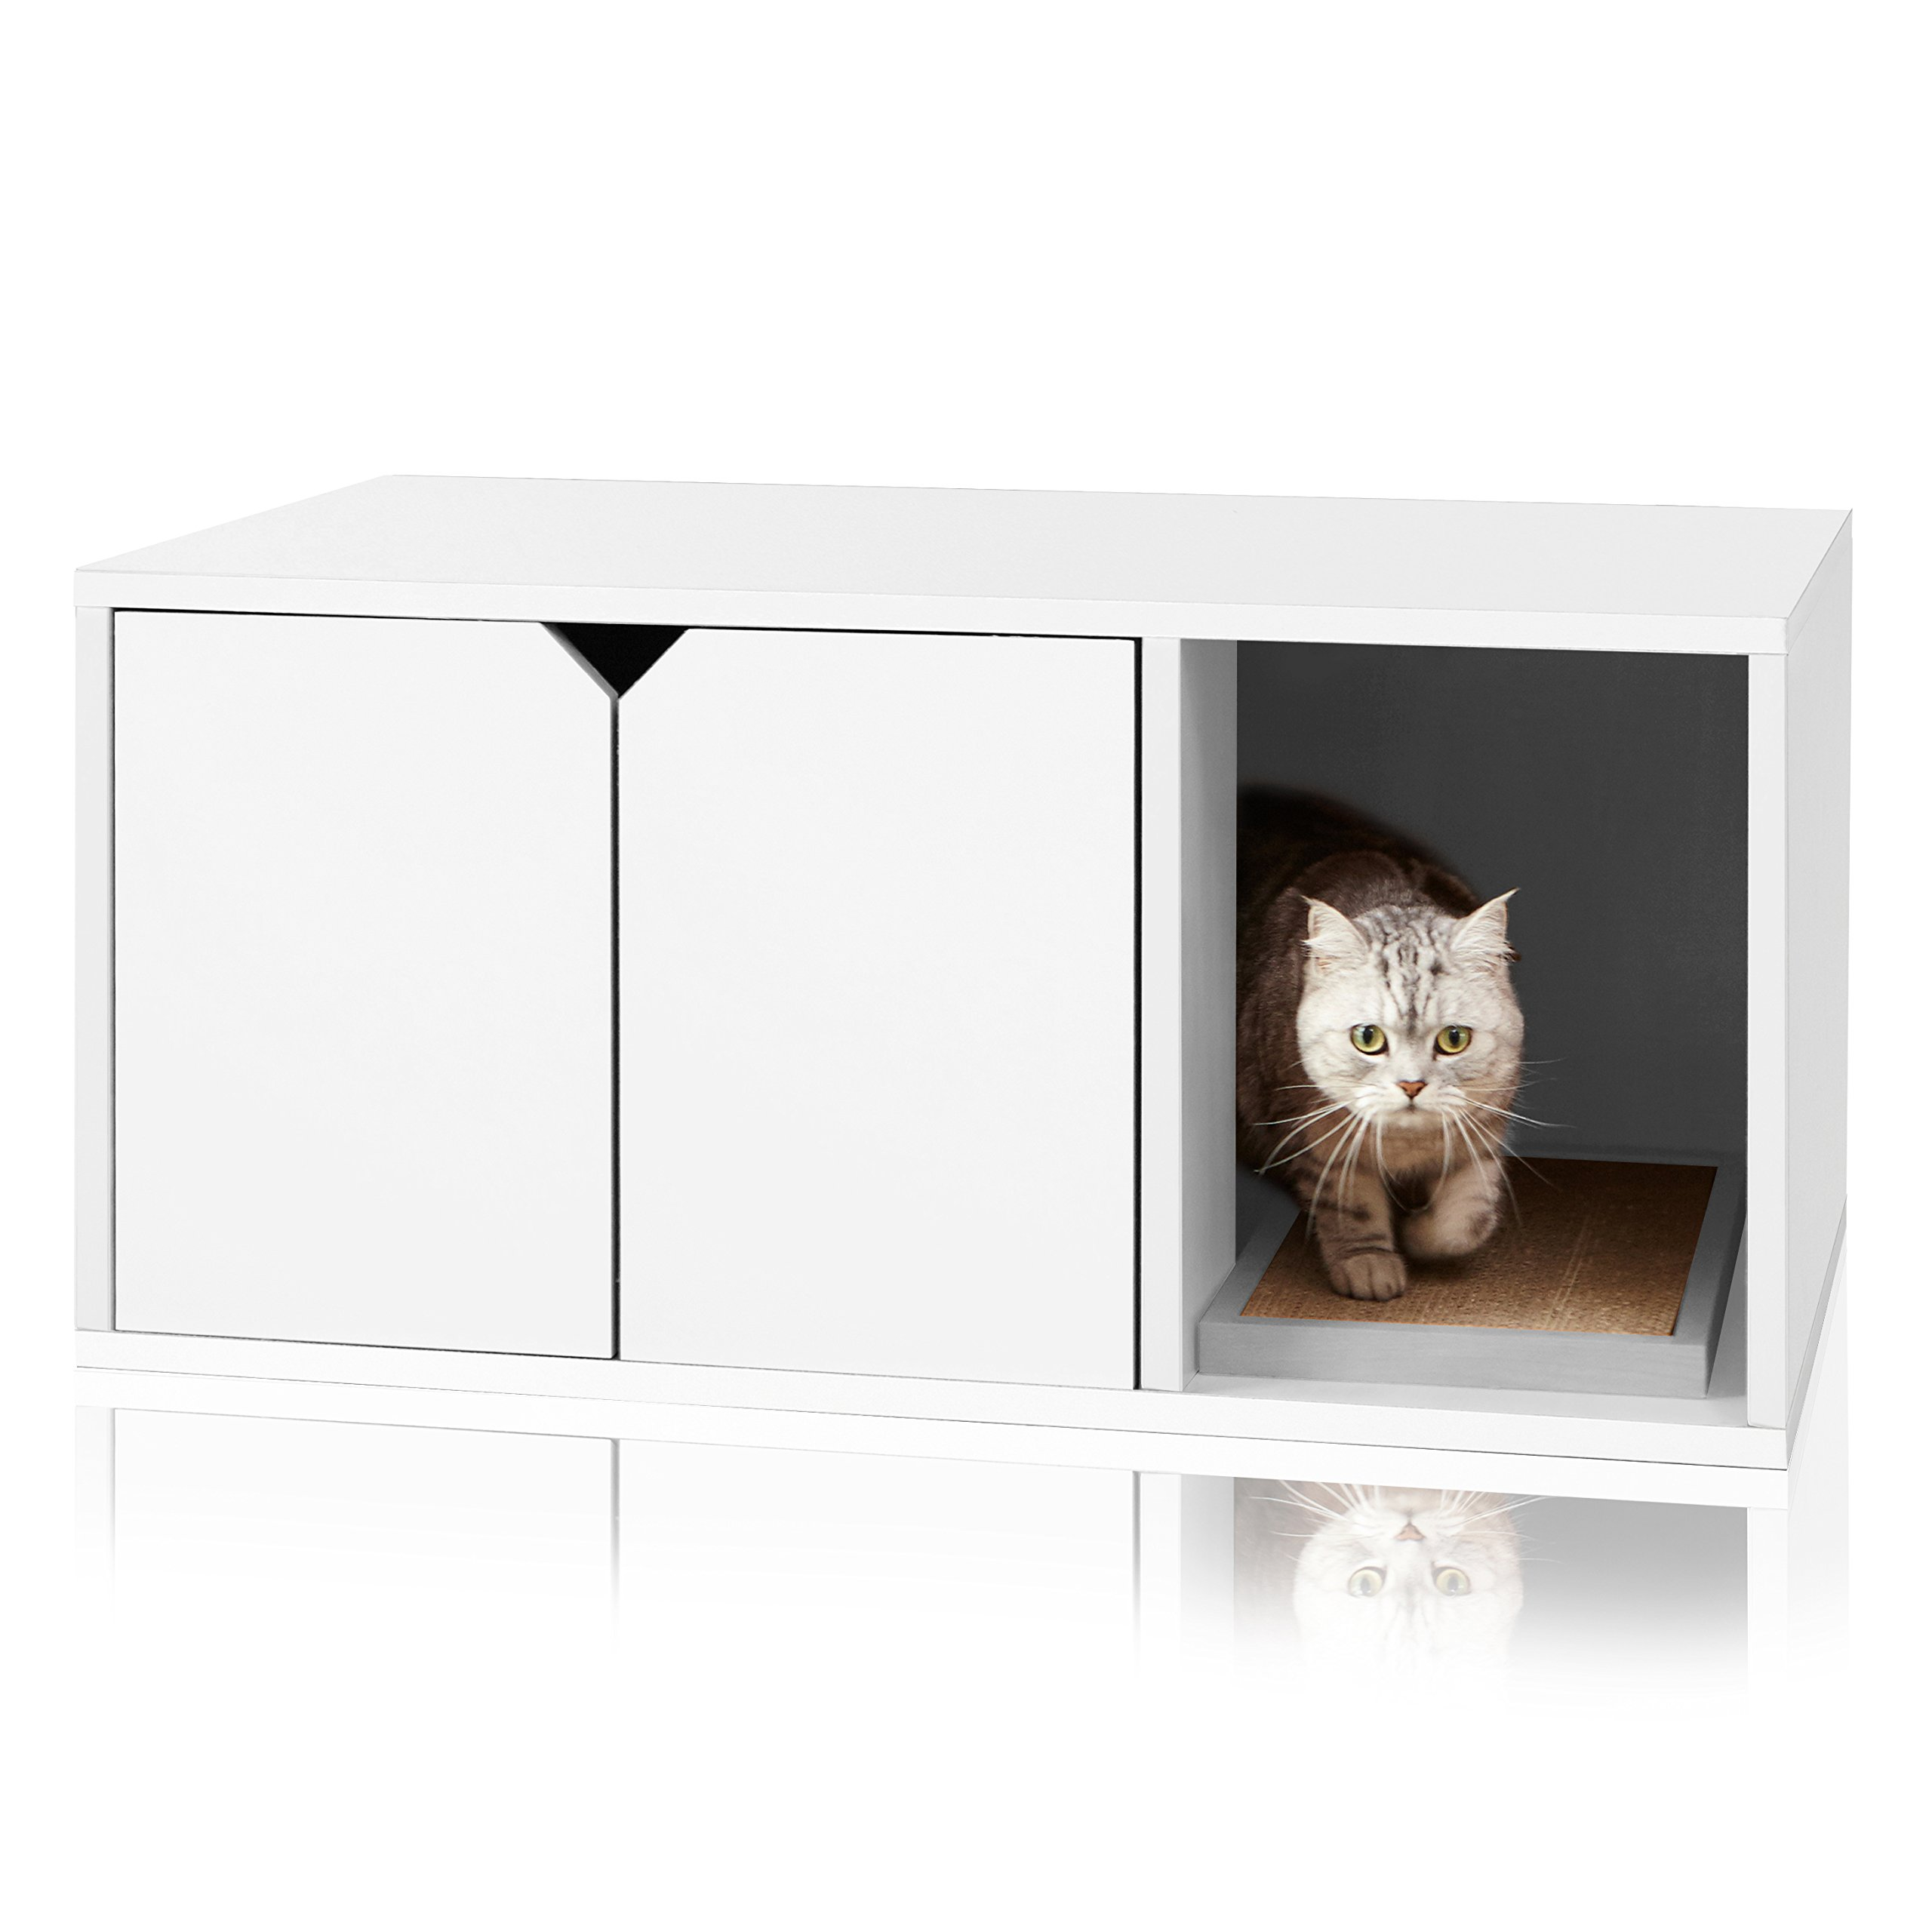 Way Basics Modern Cat Litter Box Enclosure, White (Tool Free Assembly and Sustainable Made from Non Toxic zBoard paperboard) by Way Basics